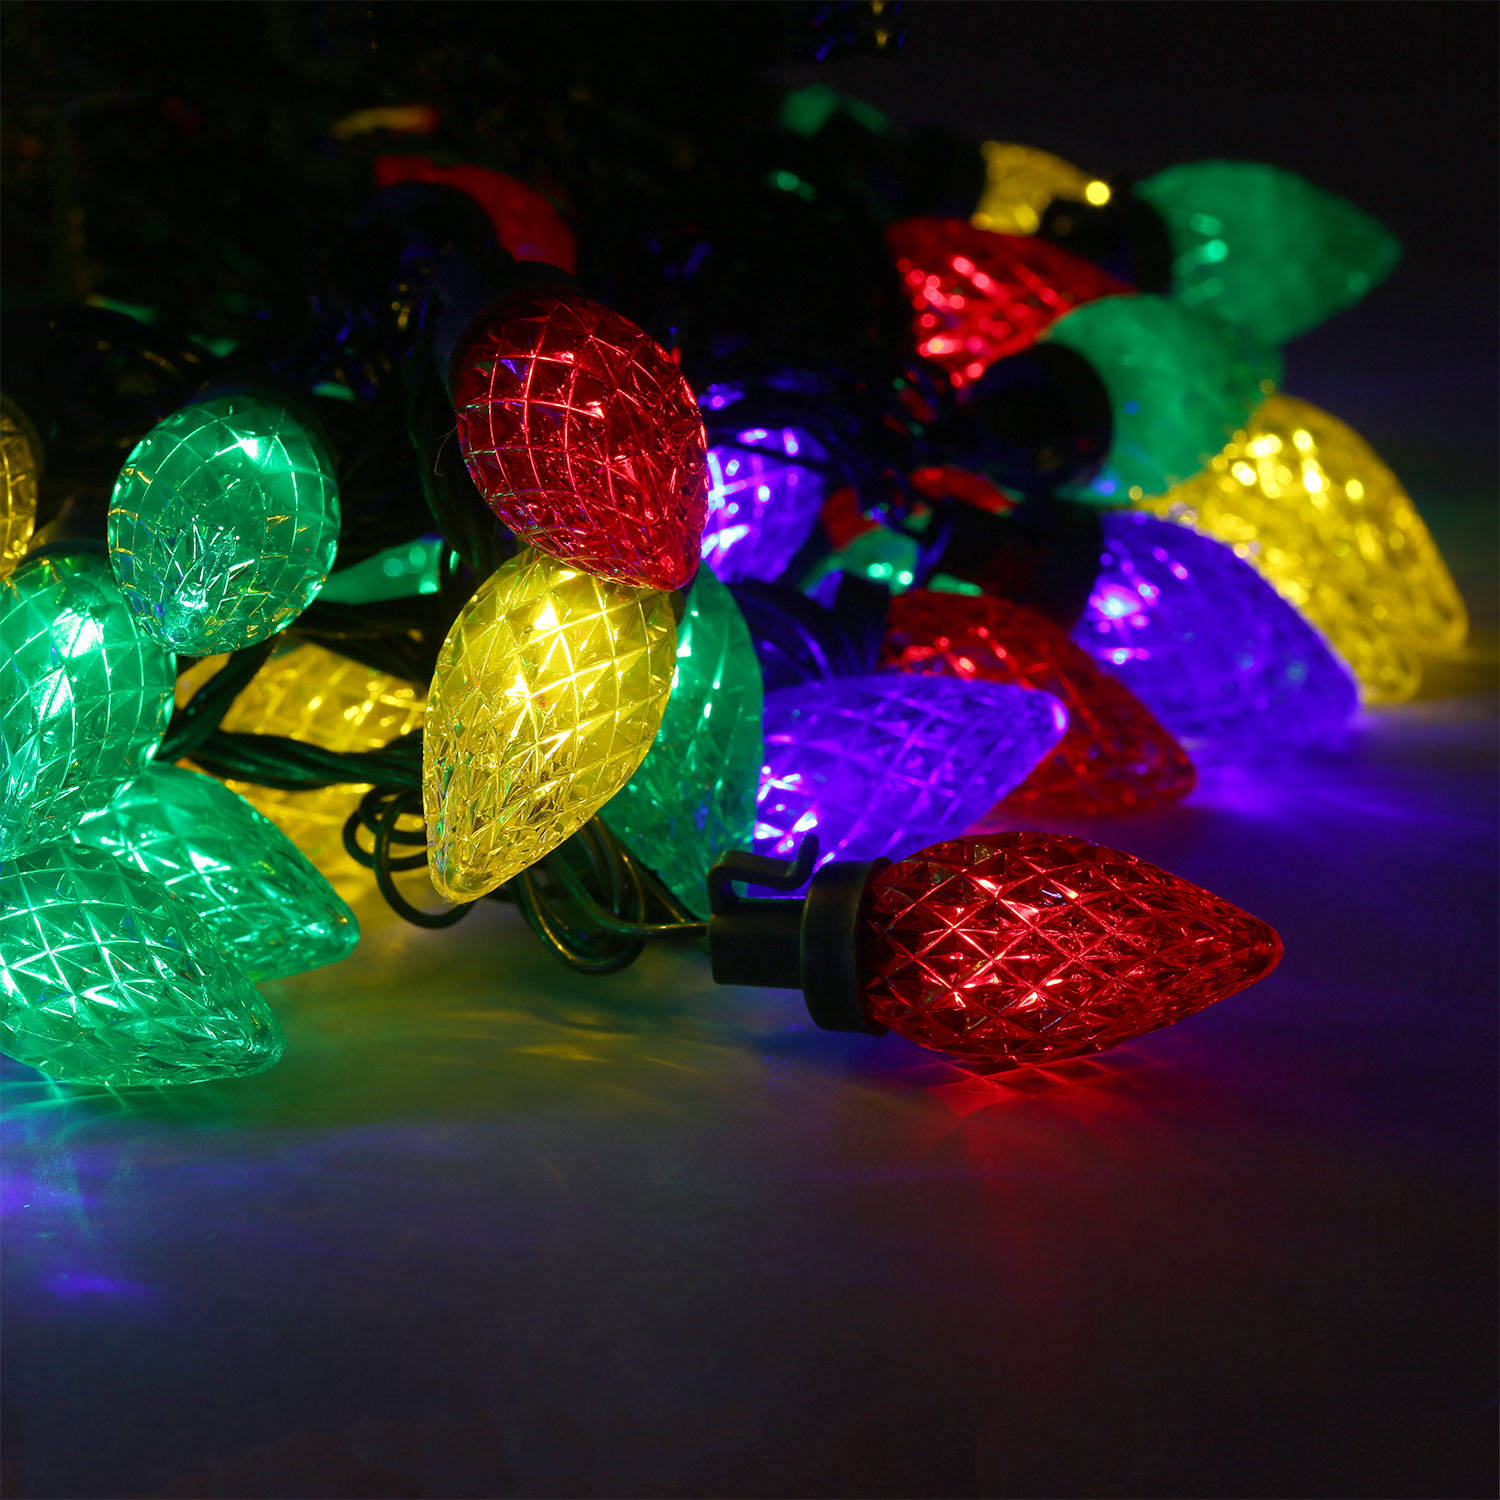 Lights.com String Lights Christmas Lights Multicolor C7 Berry Bulb Battery String Lights ...